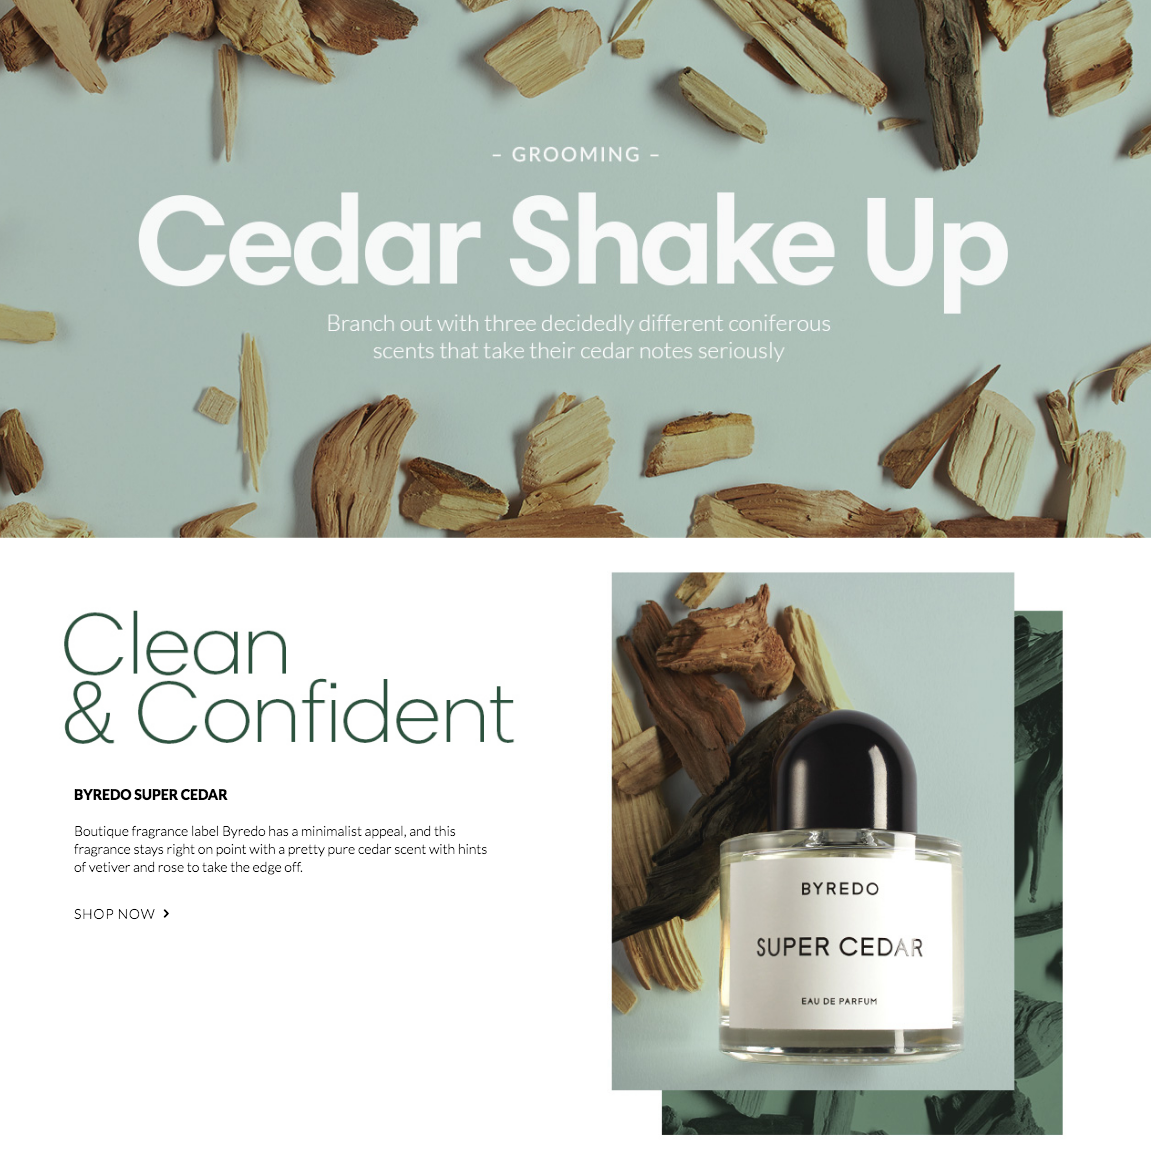 Cedar Shake Up | Holt Renfrew